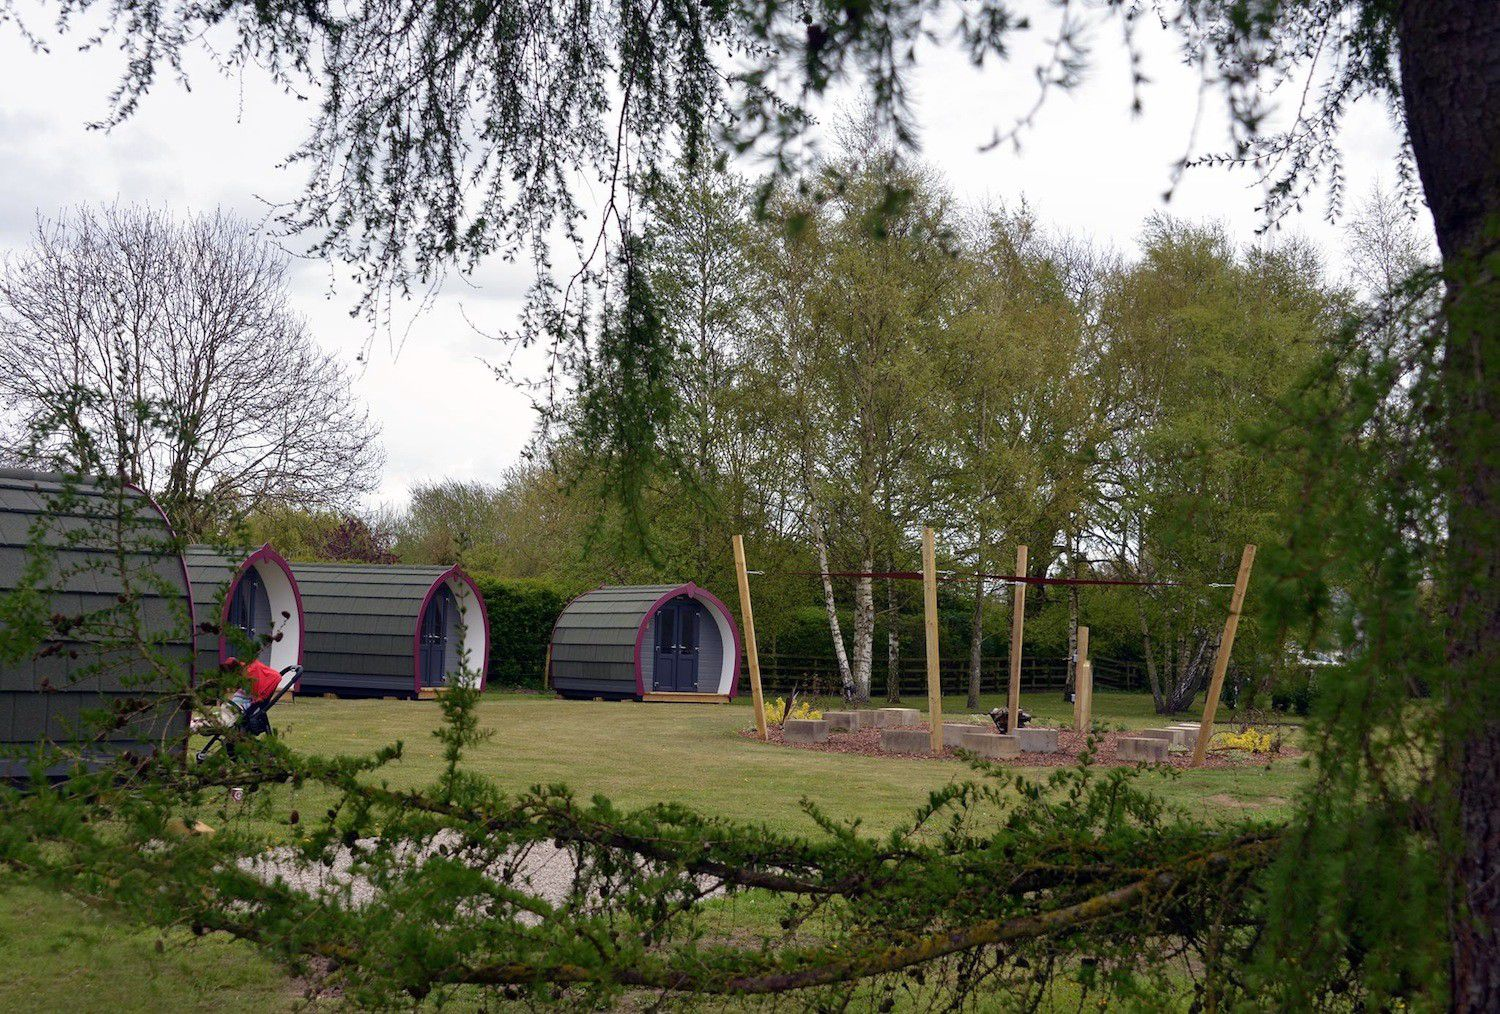 A glampsite designed for cyclists, making the ideal base to explore Yorkshire's extensive network of cycling routes.